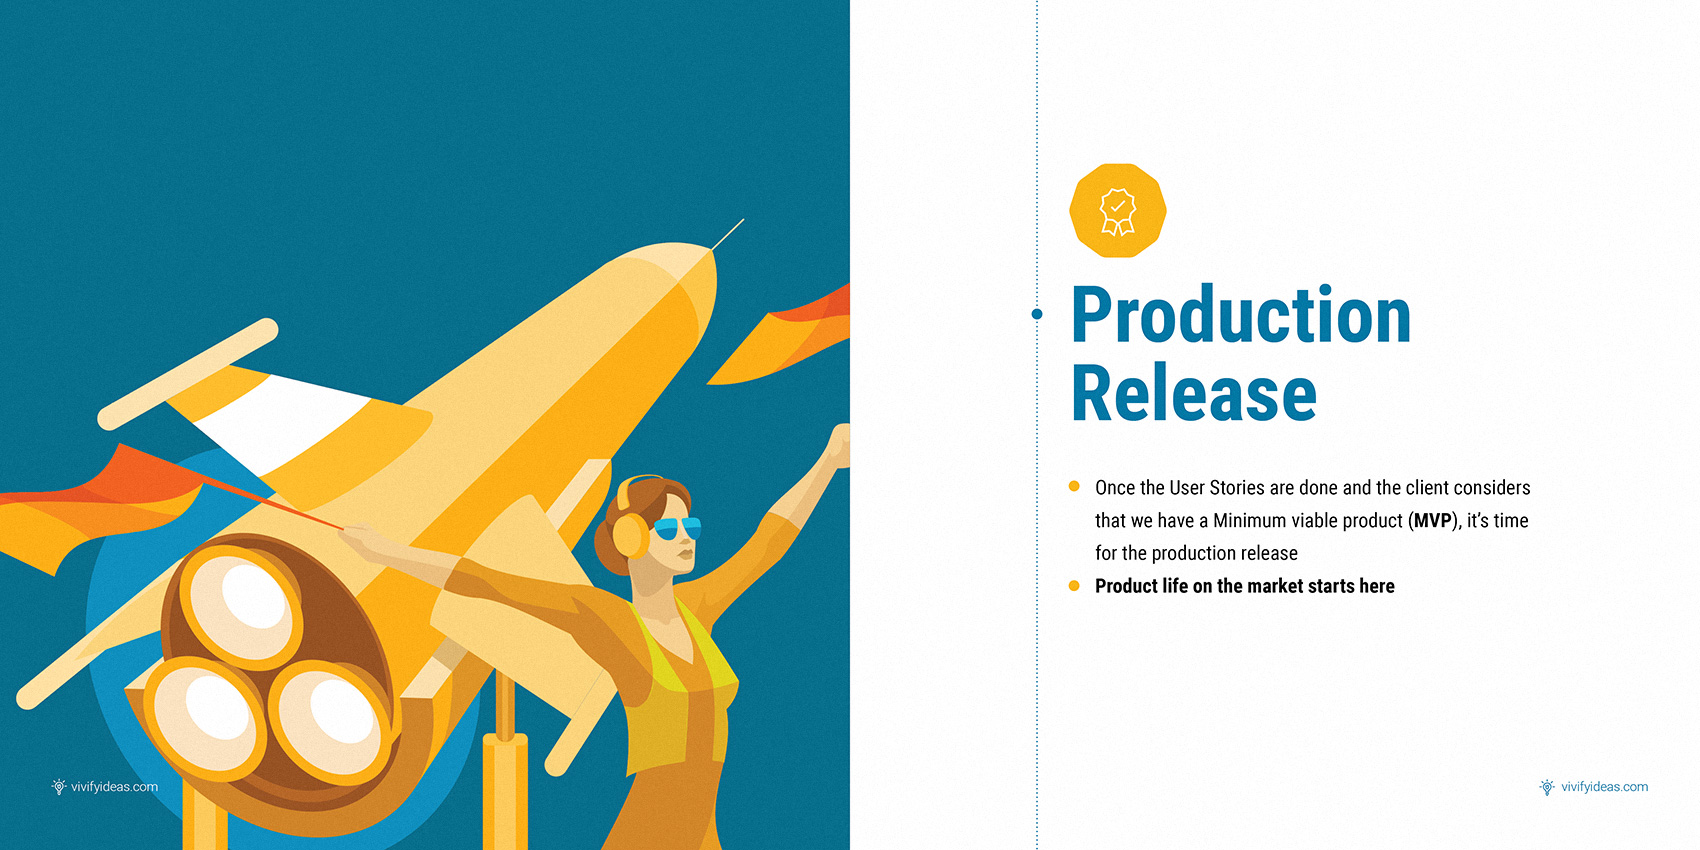 Project-Development-Lifecycle Production release.jpg